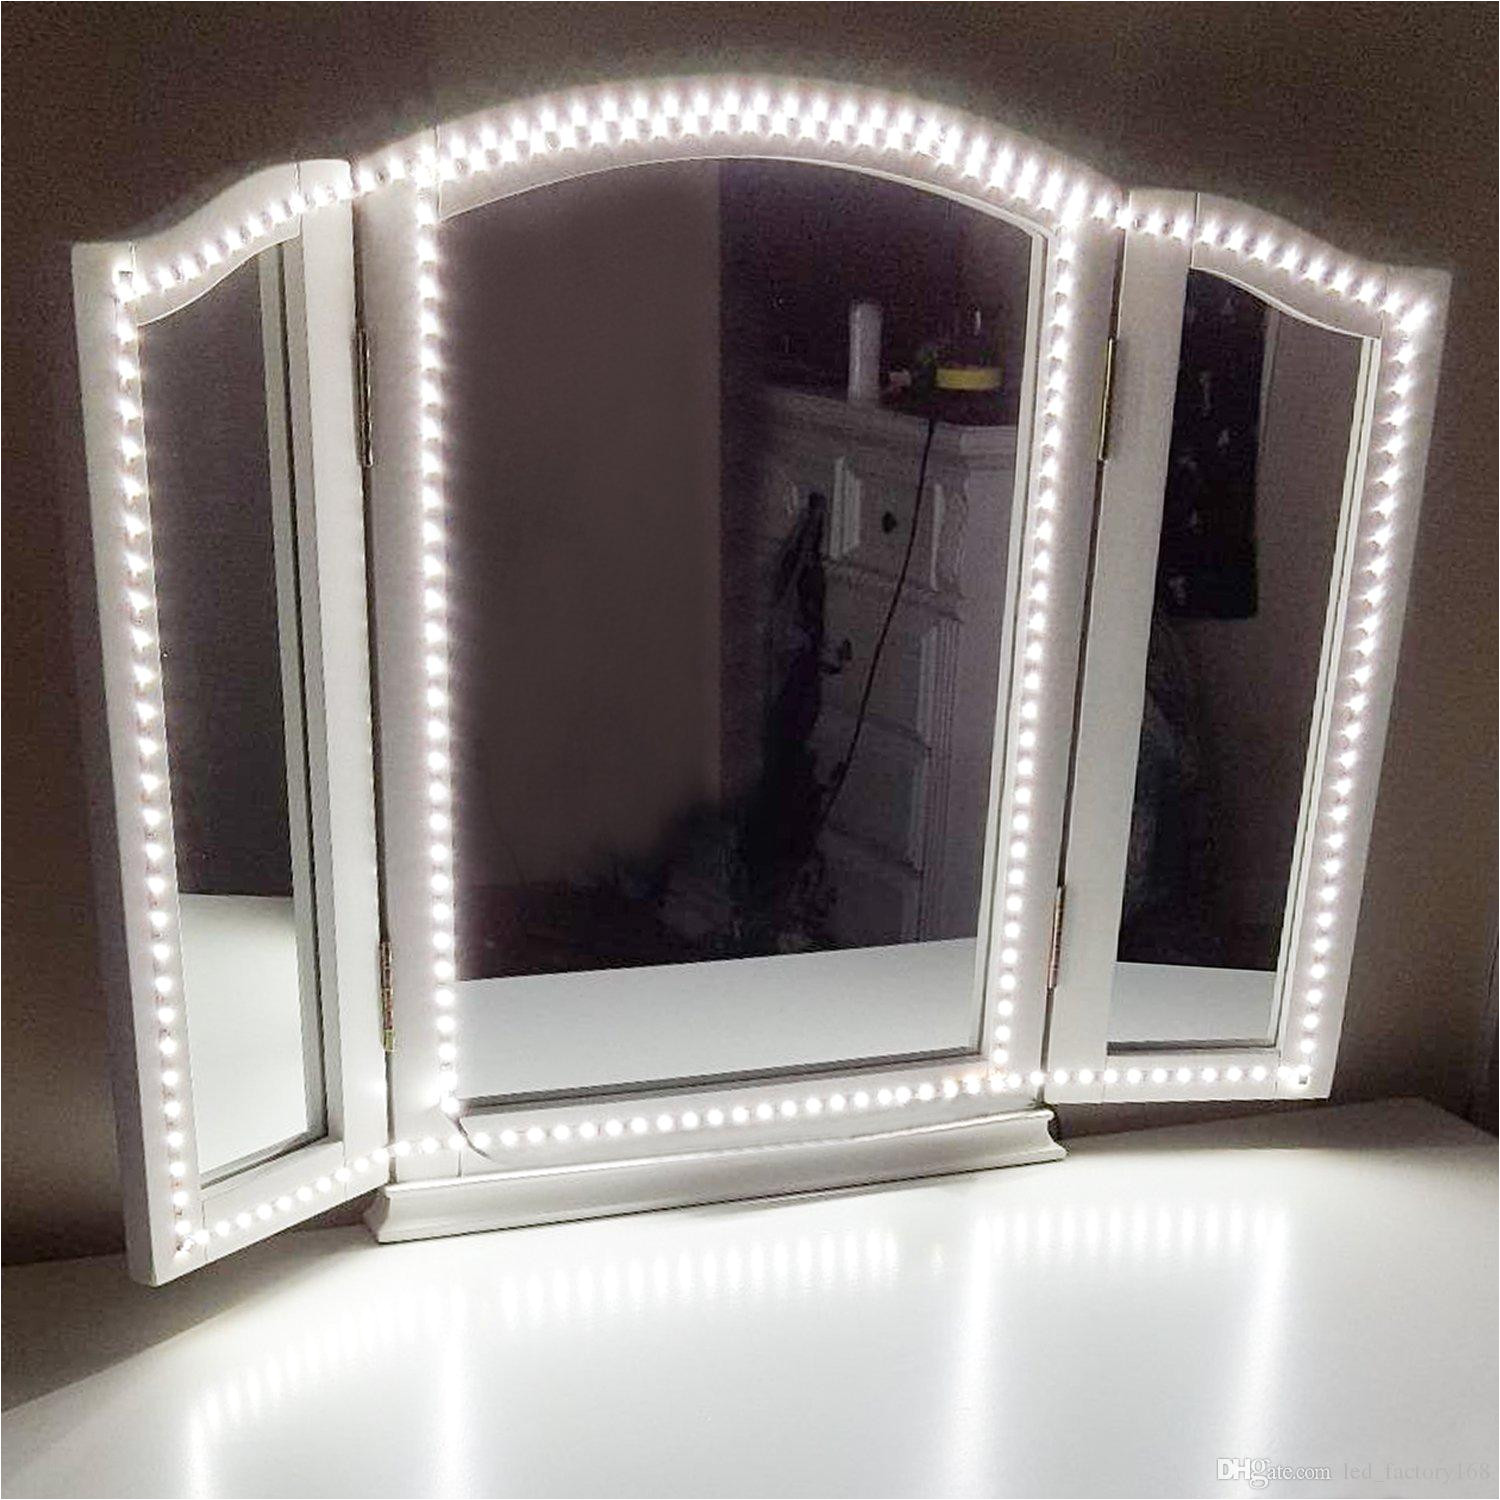 2019 led vanity mirror lights kit for makeup dressing table vanity set flexible led light strip 6000k daylight white christmas holiday home kitch from